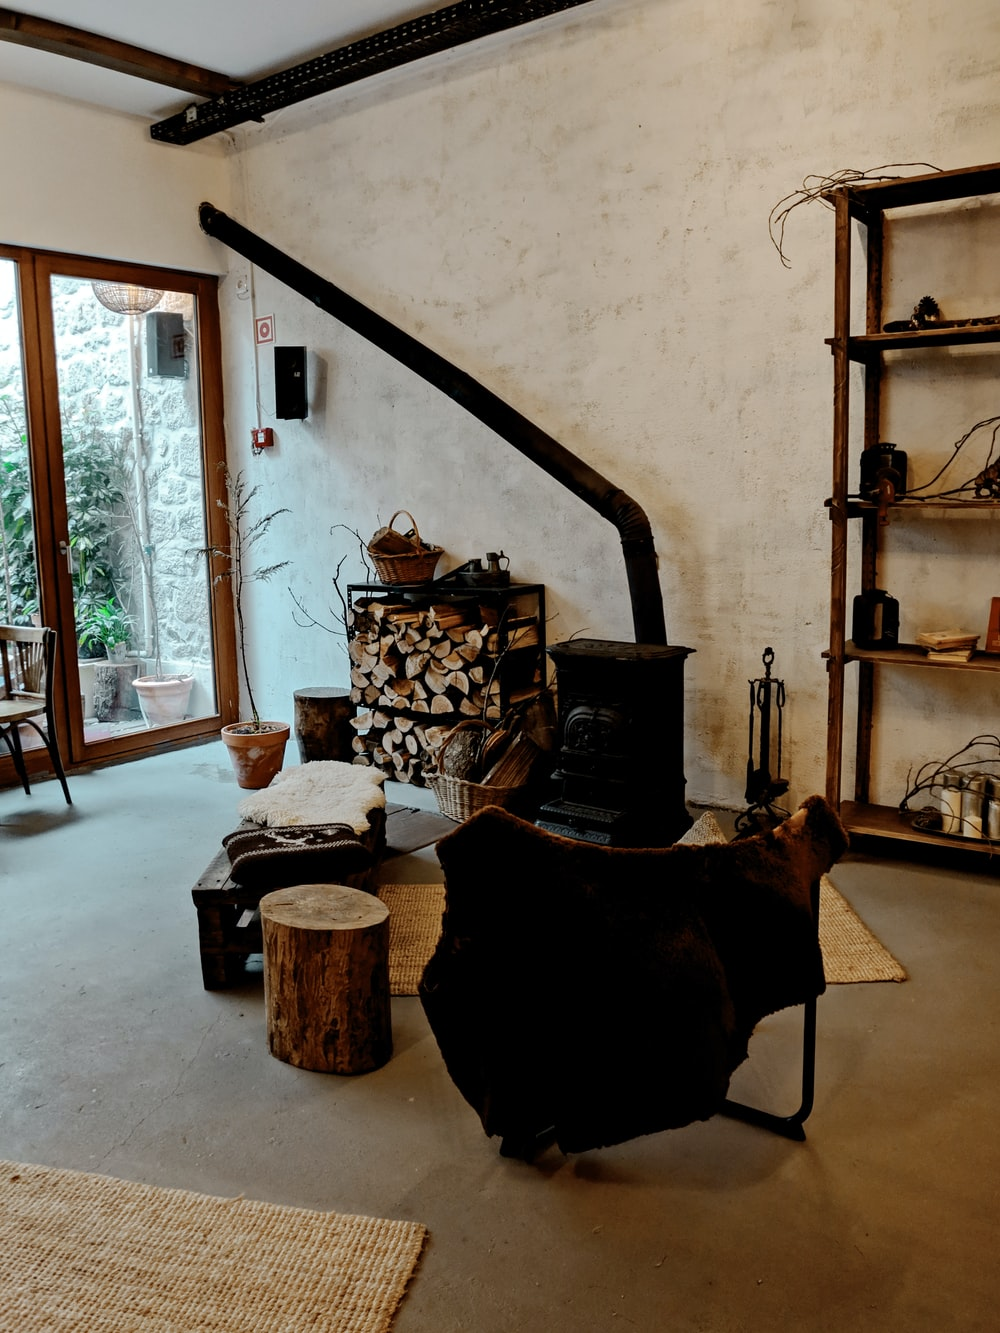 black metal fireplace near brown wooden shelf